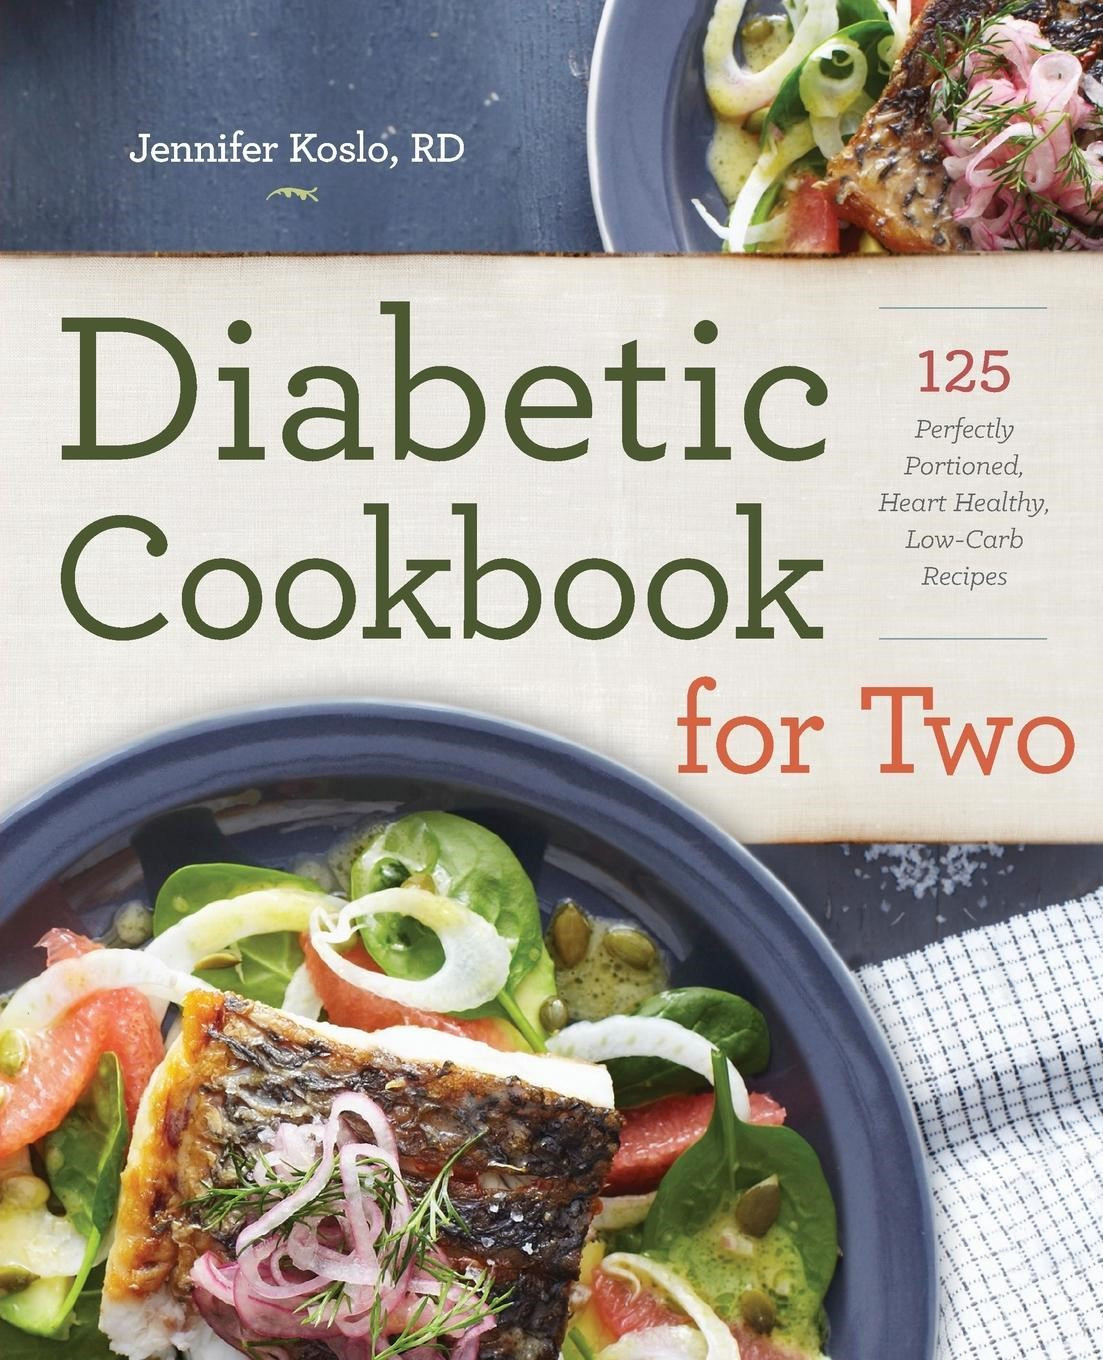 Heart Healthy And Diabetic Recipes  Diabetic Cookbook for Two 125 Perfectly Portioned Heart